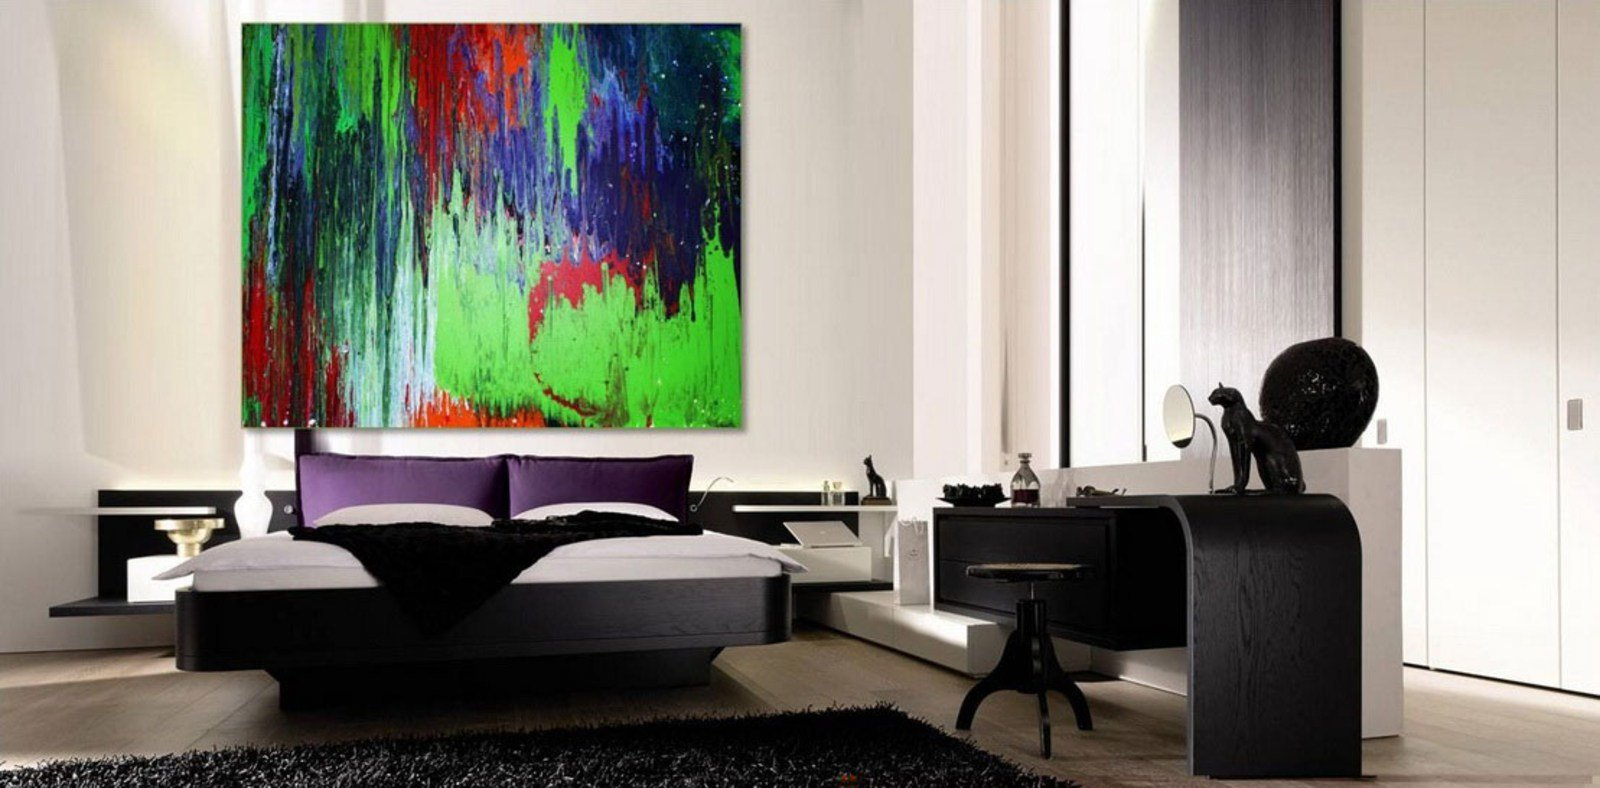 Best Preserve Artwork Tips To Take Care My Decorative With Pictures